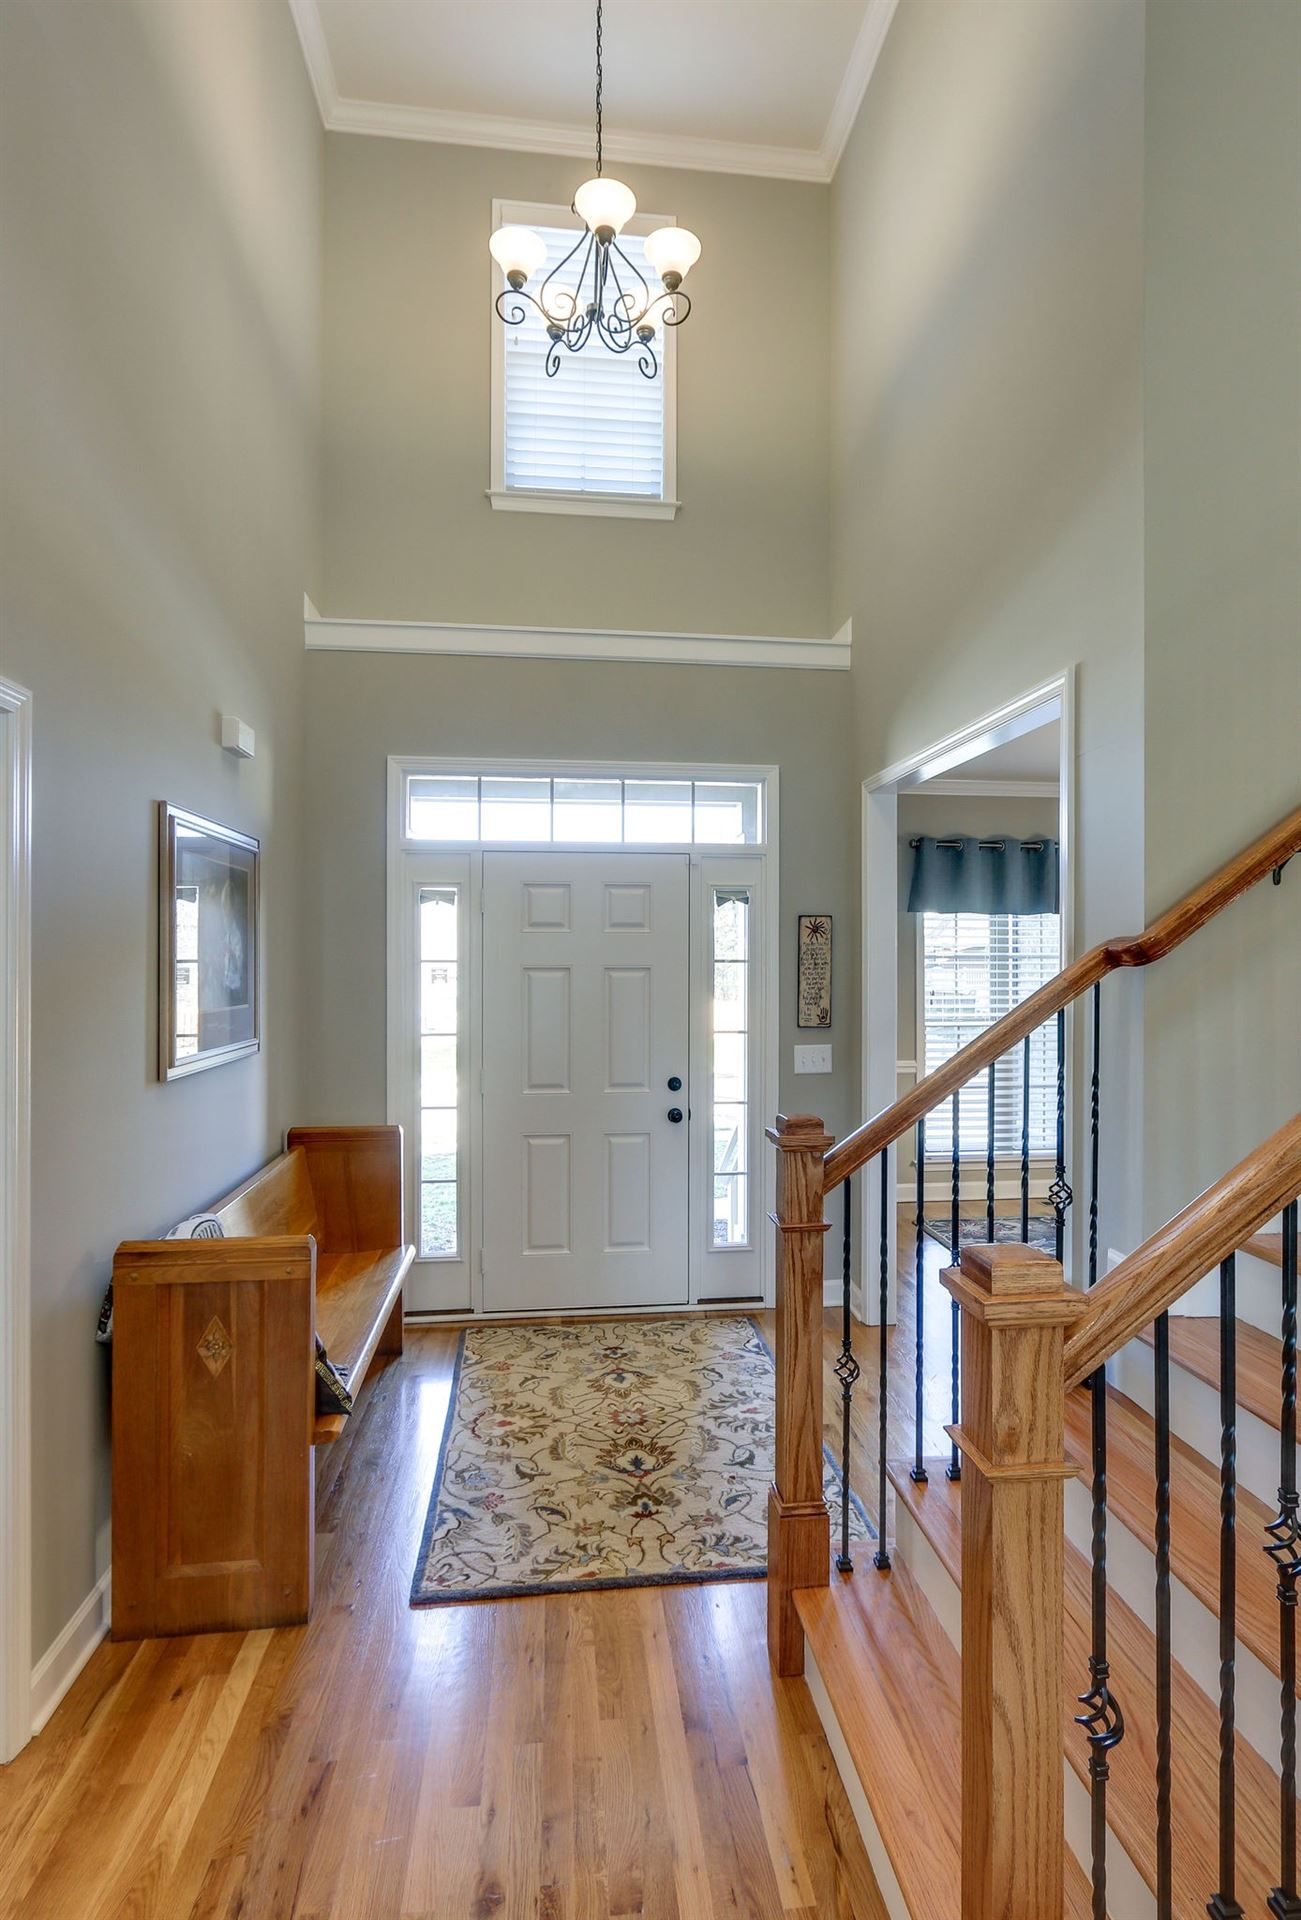 Photo of 2011 Lequire Ln, Spring Hill, TN 37174 (MLS # 2131425)